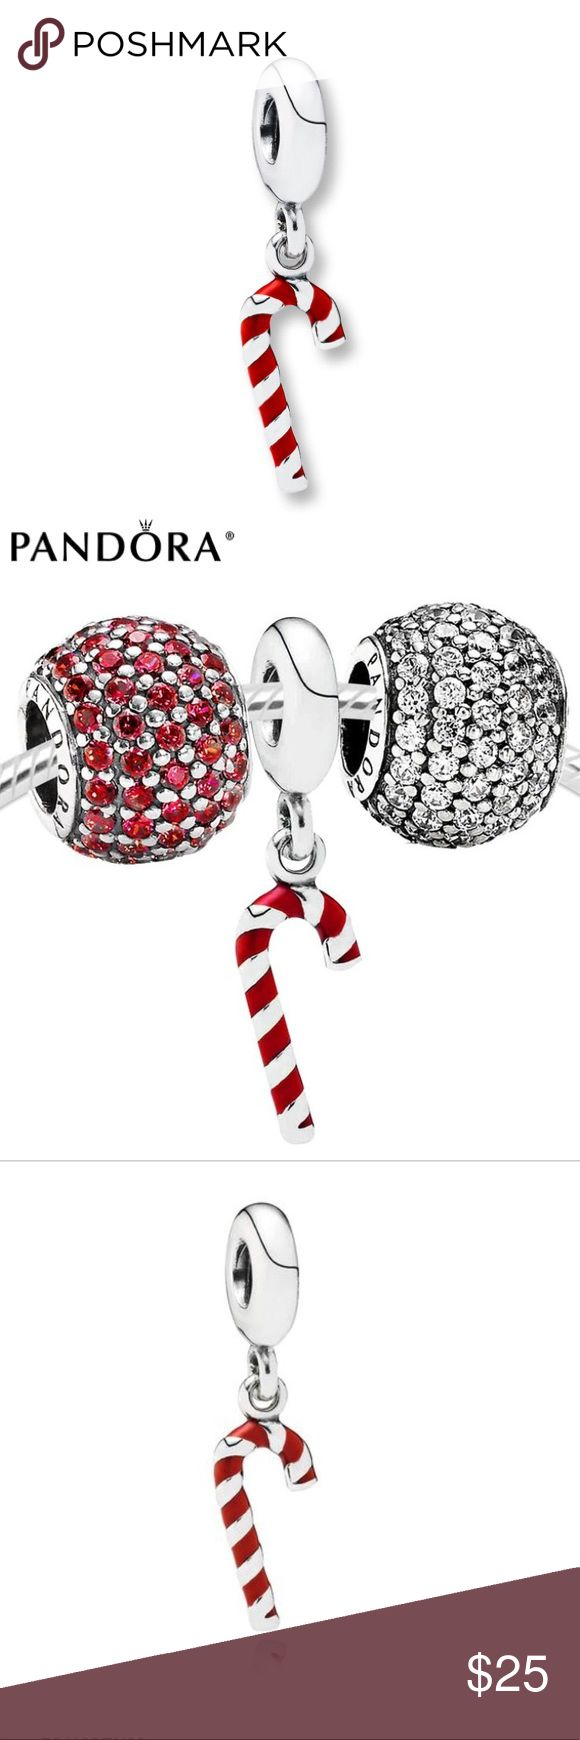 ✨SALE✨Pandora Original Candy Cane Sterling Silver A PANDORA candy cane charm accented in red enamel stripes dangles from this 12 Days of Christmas charm Holiday collection Metal STERLING SILVER  RED ENAMEL Crafted from sparkling sterling silver and vibrant red enamel, this candy cane charm is guaranteed to fill you with the holiday spirit.  Great condition minor scratches which occur in pure silver Has 925 Stamp Price Firm already a great deal since I purchased it for nearly double the…